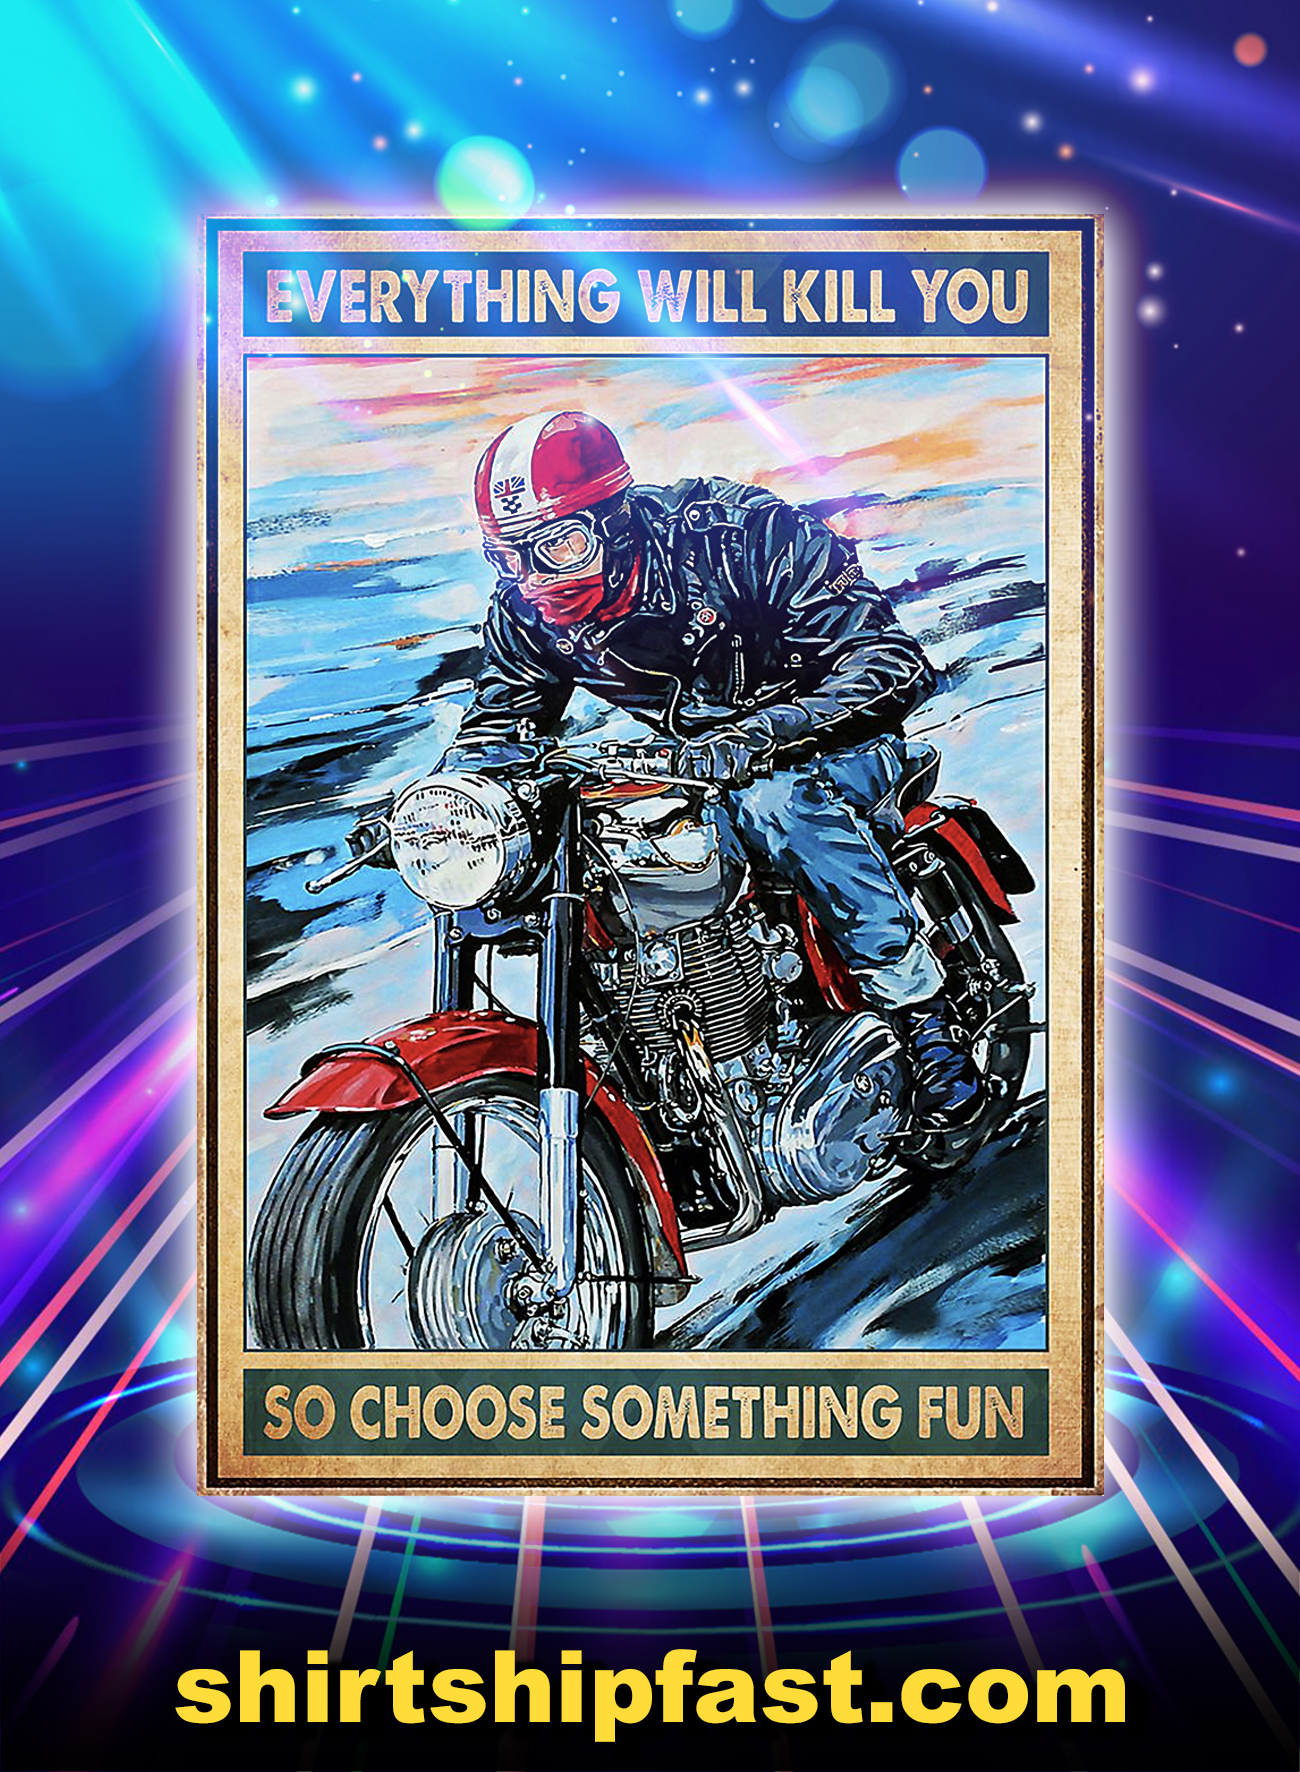 Cafe racer everything will kill you so choose something fun poster - A4